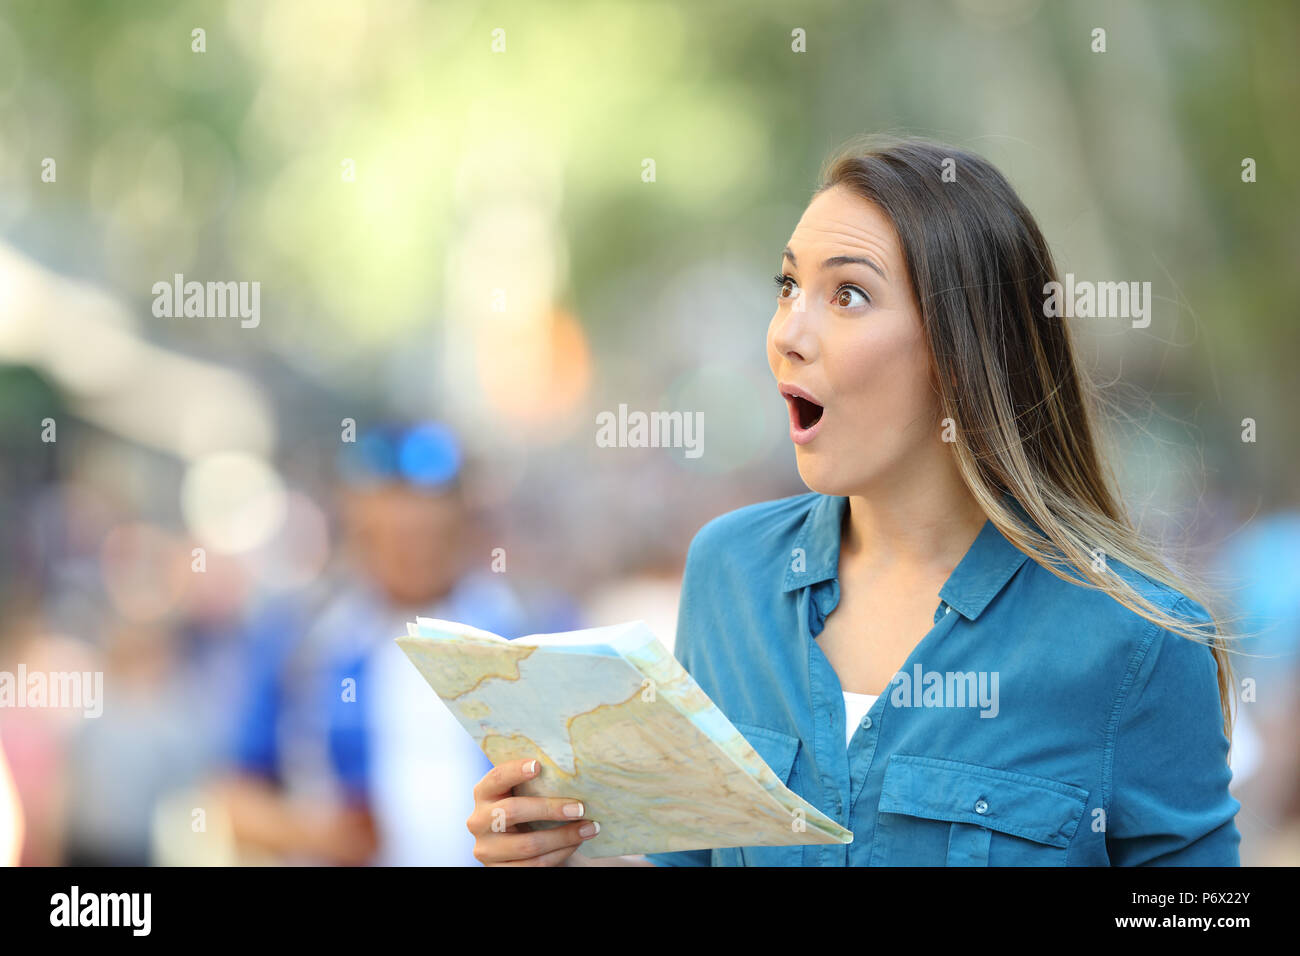 Surprised woman sightseeing looking at side holding a map on the street - Stock Image